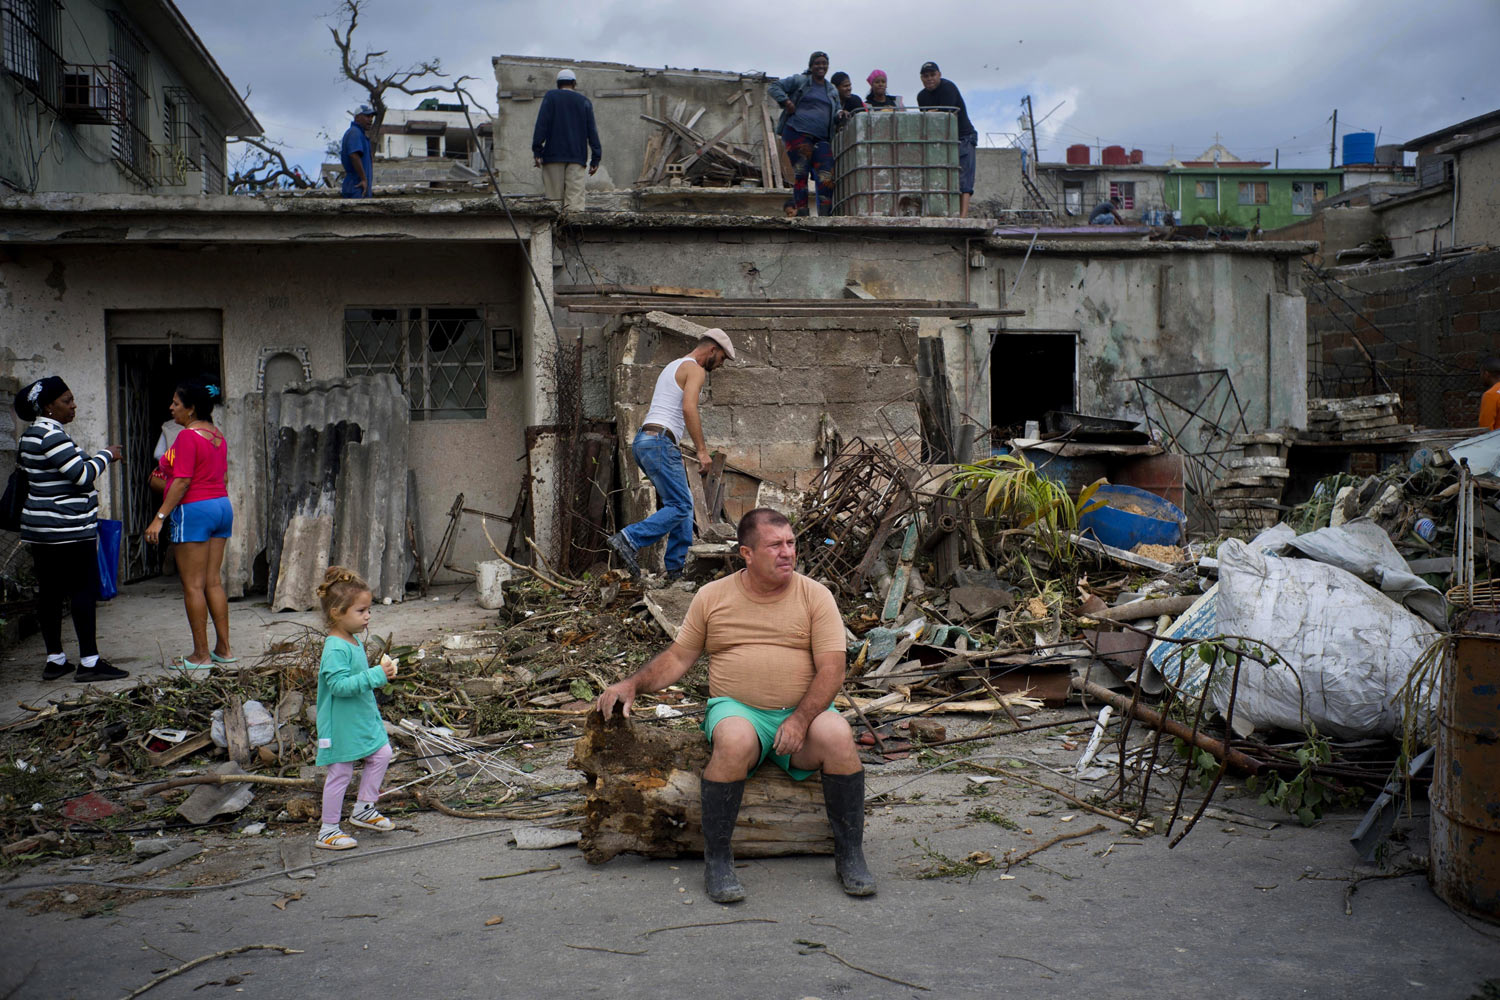 A man rests on the trunk of a tree that was toppled by a tornado, after removing rubble from his home in Regla, Cuba, on Monday, Jan. 28, 2019. A tornado and pounding rains smashed into the eastern part of Cuba's capital overnight, toppling trees, bending power poles and flinging shards of metal roofing through the air as the storm cut a path of destruction across eastern Havana. (AP Photo/Ramon Espinosa)